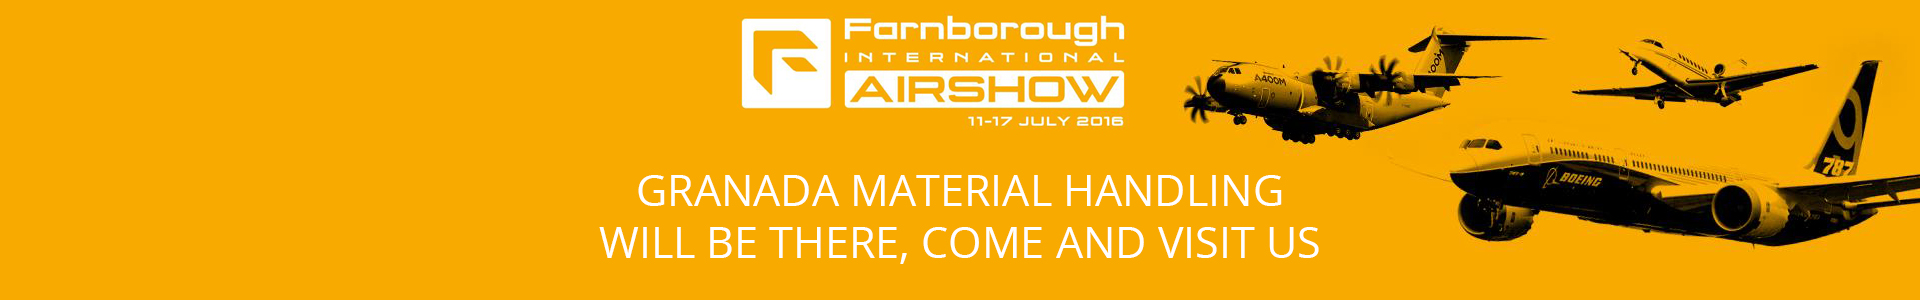 Farnborough-Slide2